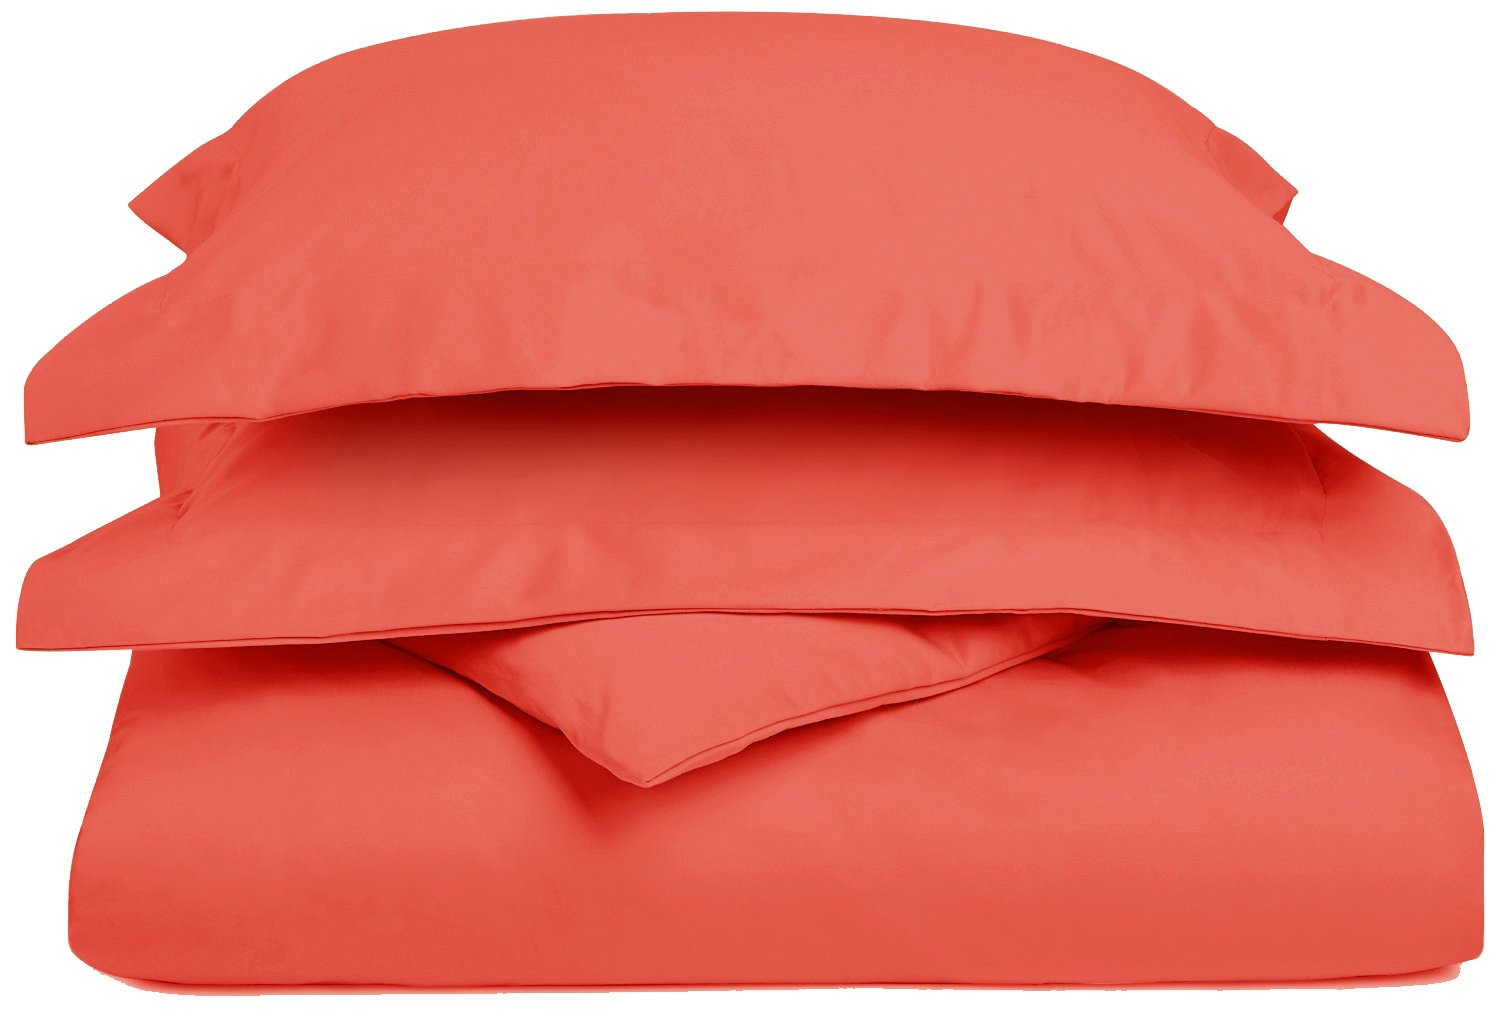 Superior 1200 Thread Count 3 Piece Cotton Blend Solid Duvet Cover, Full/Queen, Coral CR1200FQDC SLCO